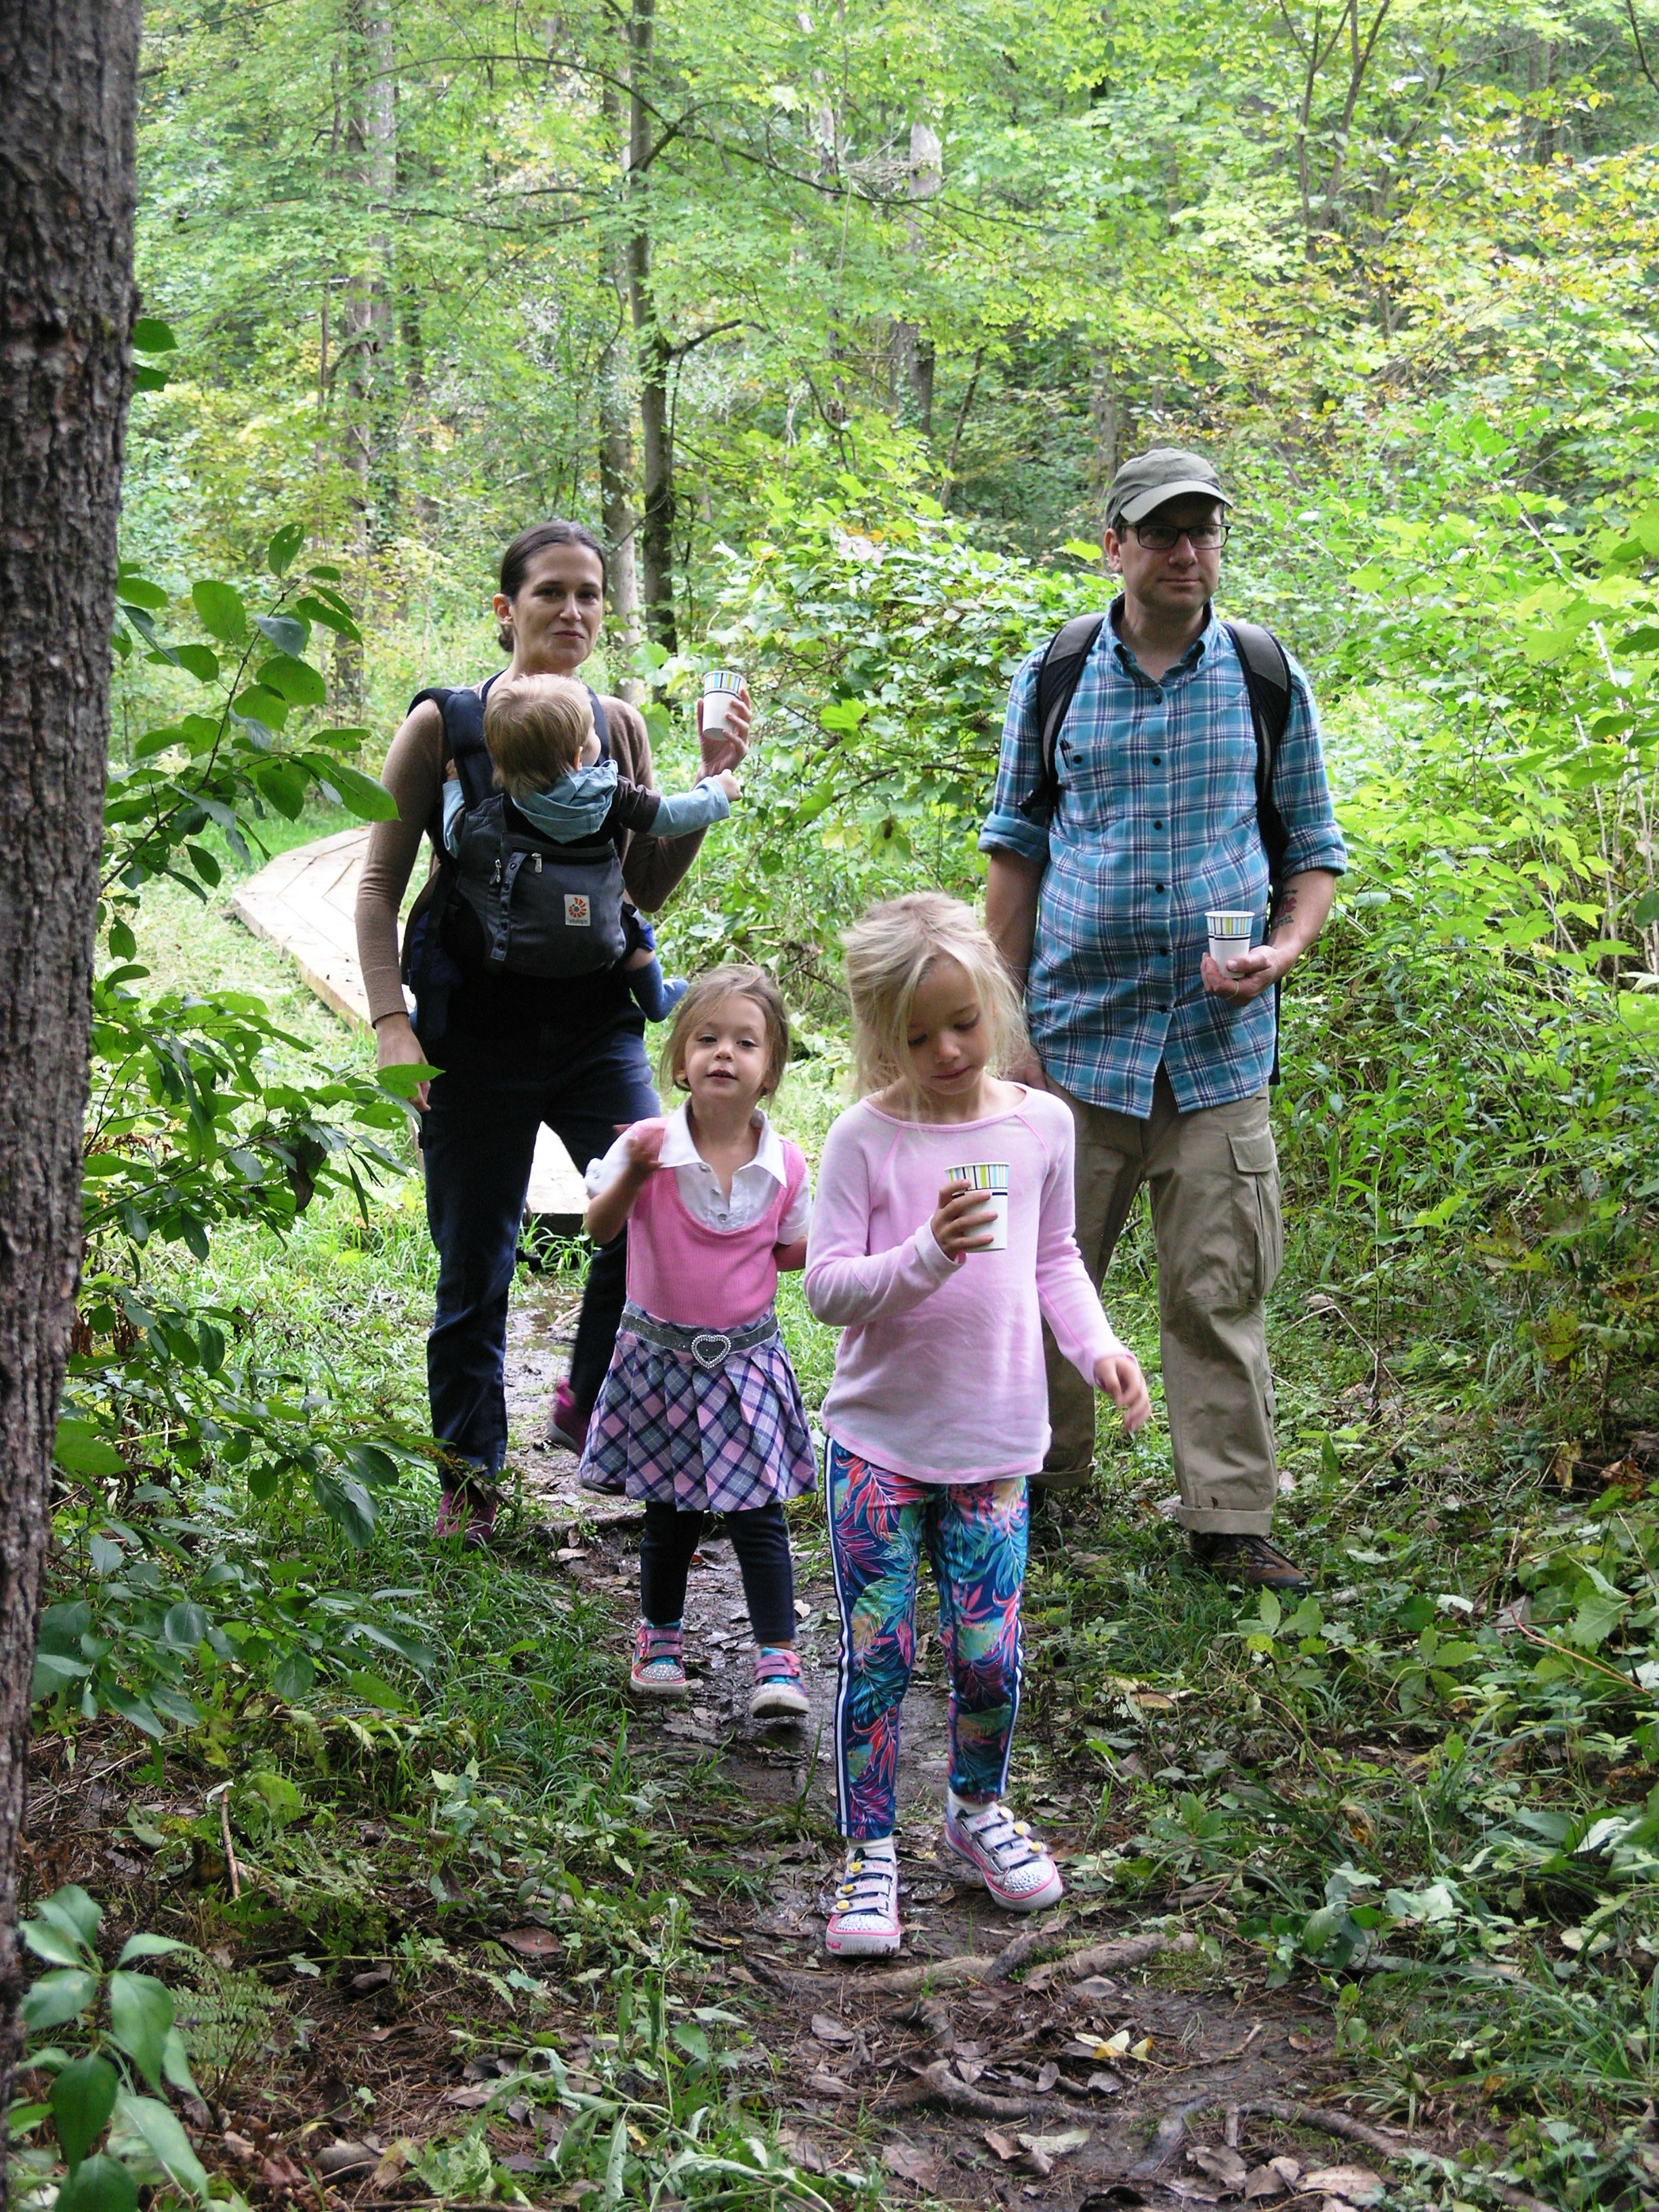 Visit our family-friendly trail at the Pfeiffer Arboretum.